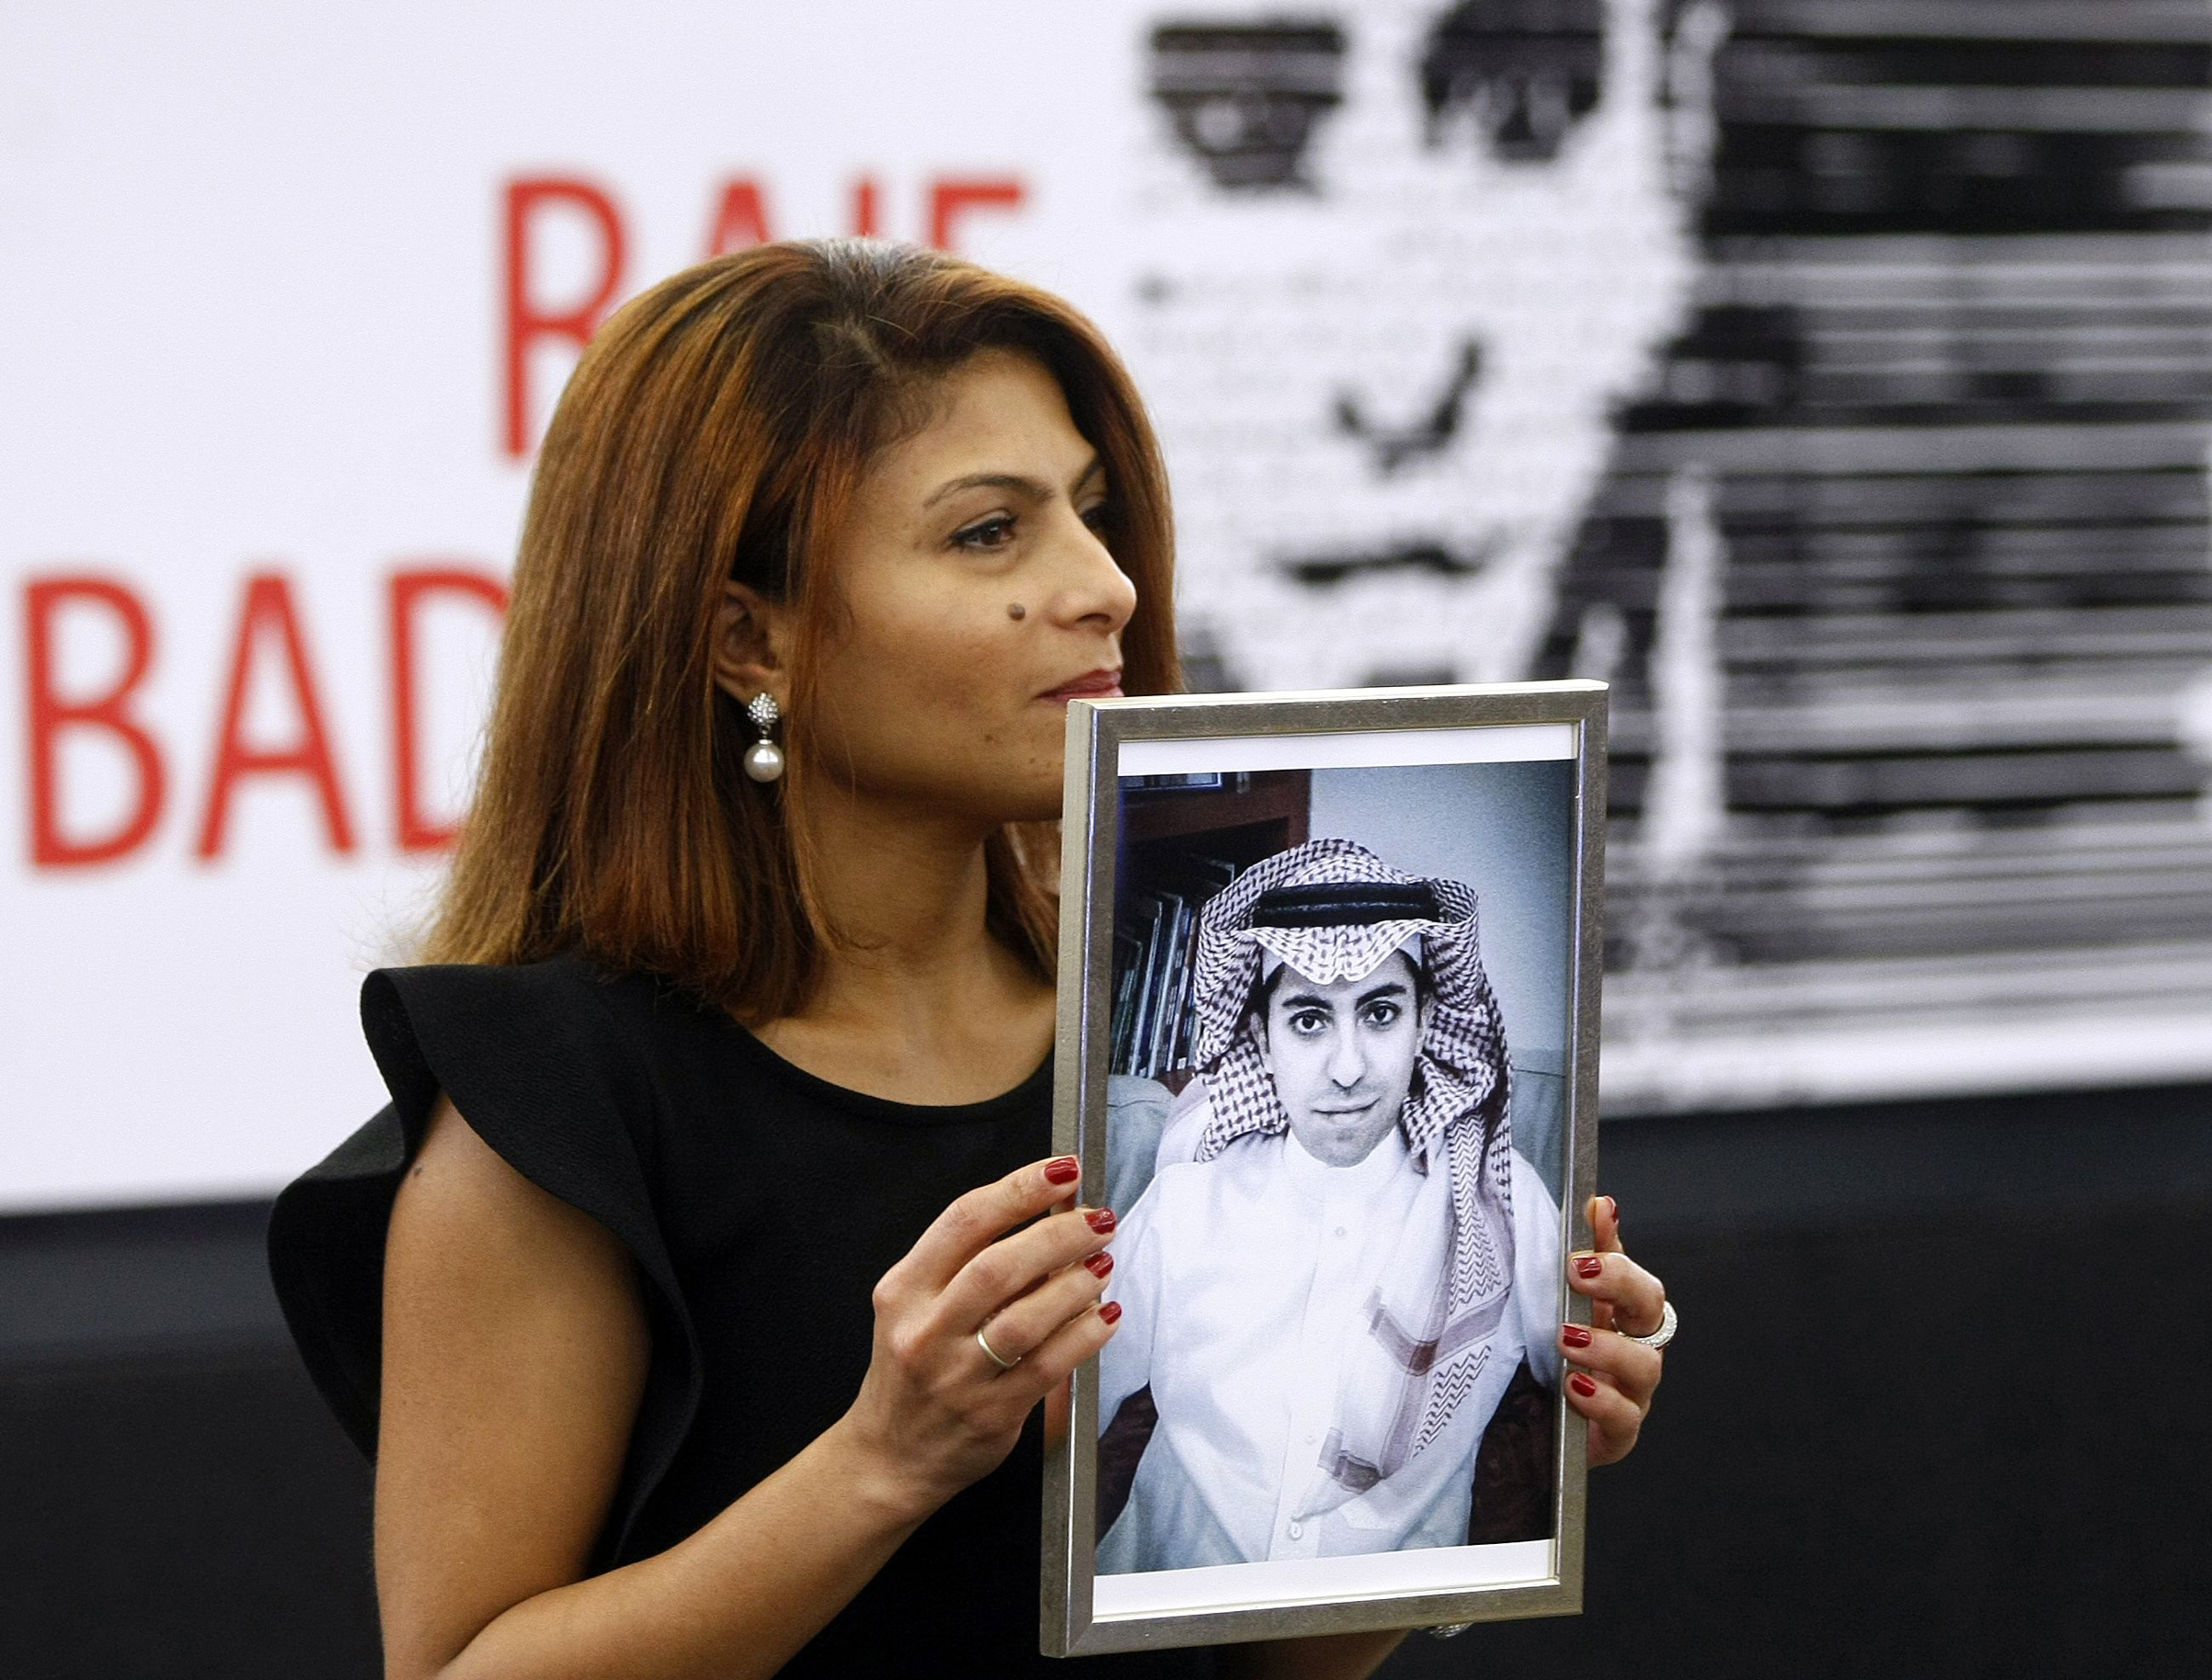 Ensaf Haidar, wife of the jailed Saudi Arabian blogger Raif Badawi, shows a portrait of her husband as he is awarded with the Sakharov Prize, on Dec. 16, 2015 in Strasbourg, France.